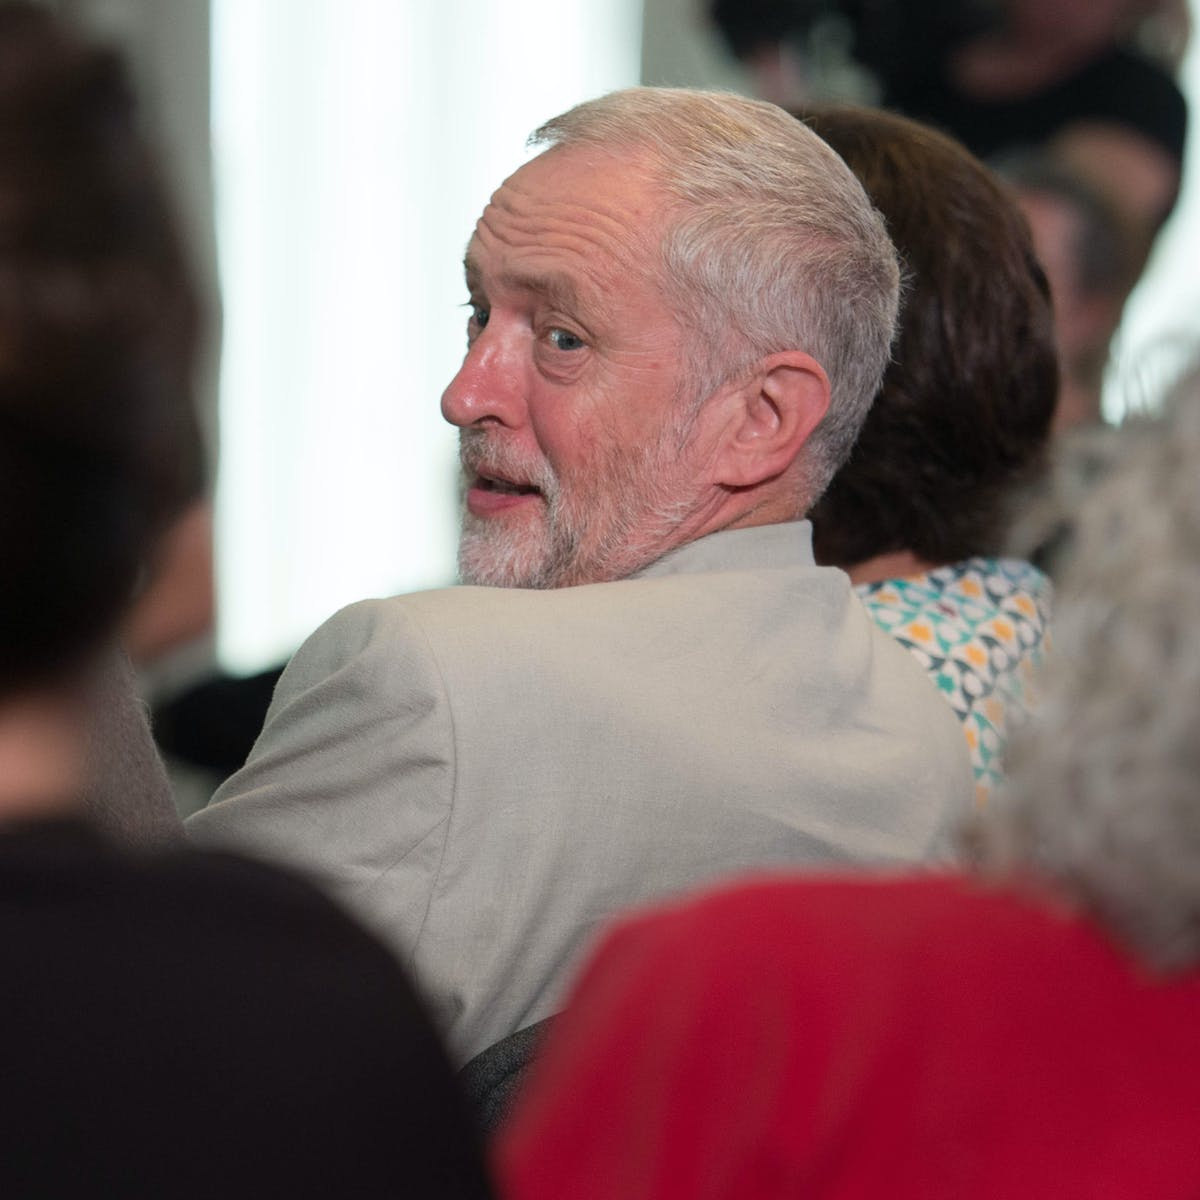 Corbyn must go – Labour needs to choose a new leader wisely, but quickly